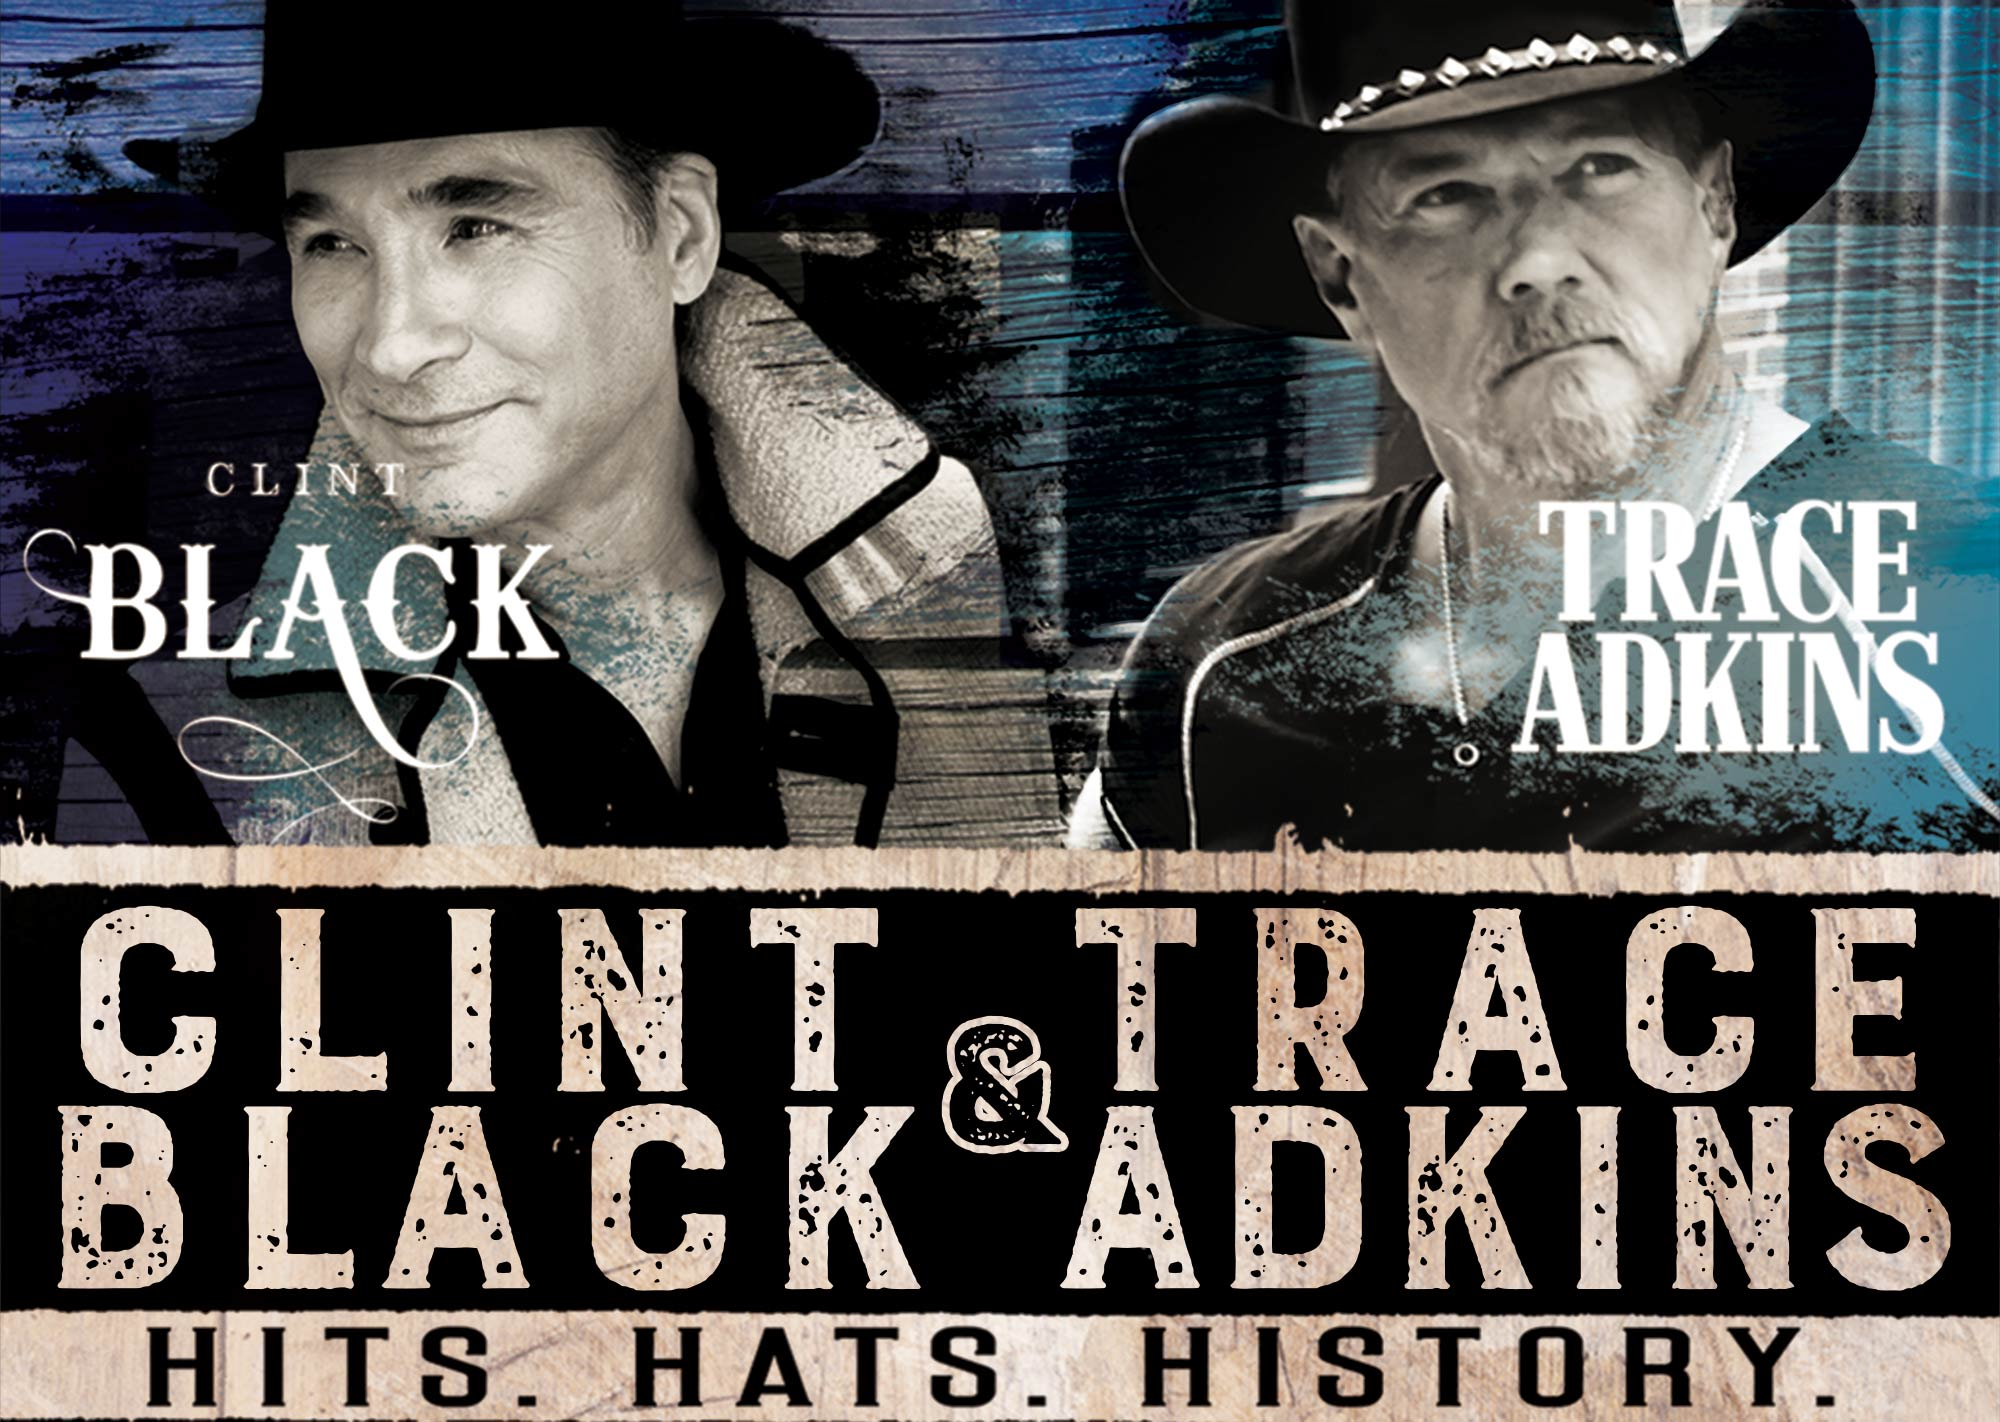 Clint_Black-Trace_Adkins-Terri_Clark-2000x1422_H-E-B-Center-at-Cedar-Park.jpg